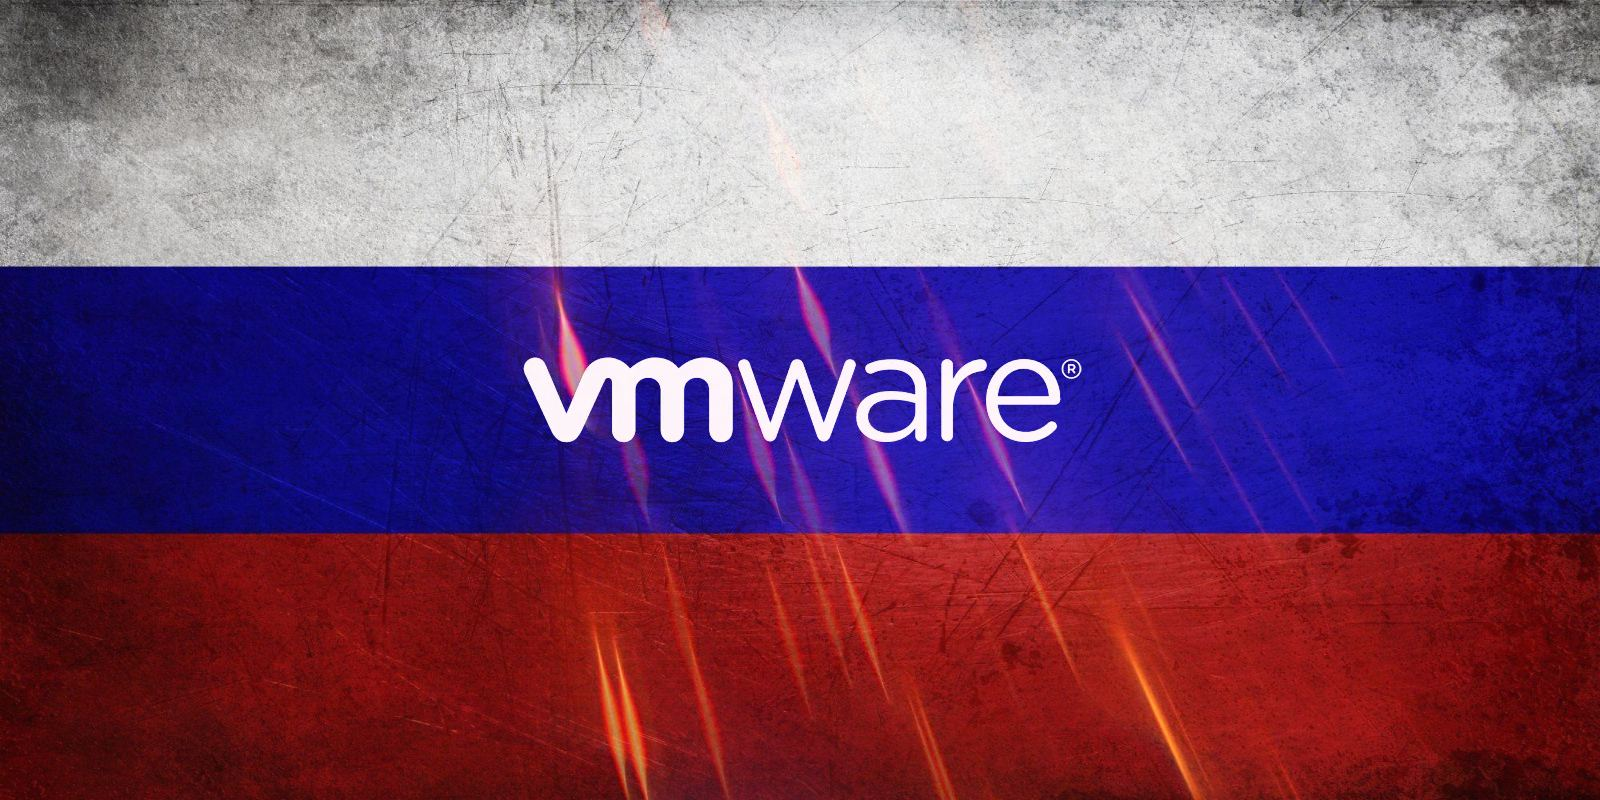 NSA: Russian state hackers exploit new VMware vulnerability to steal data